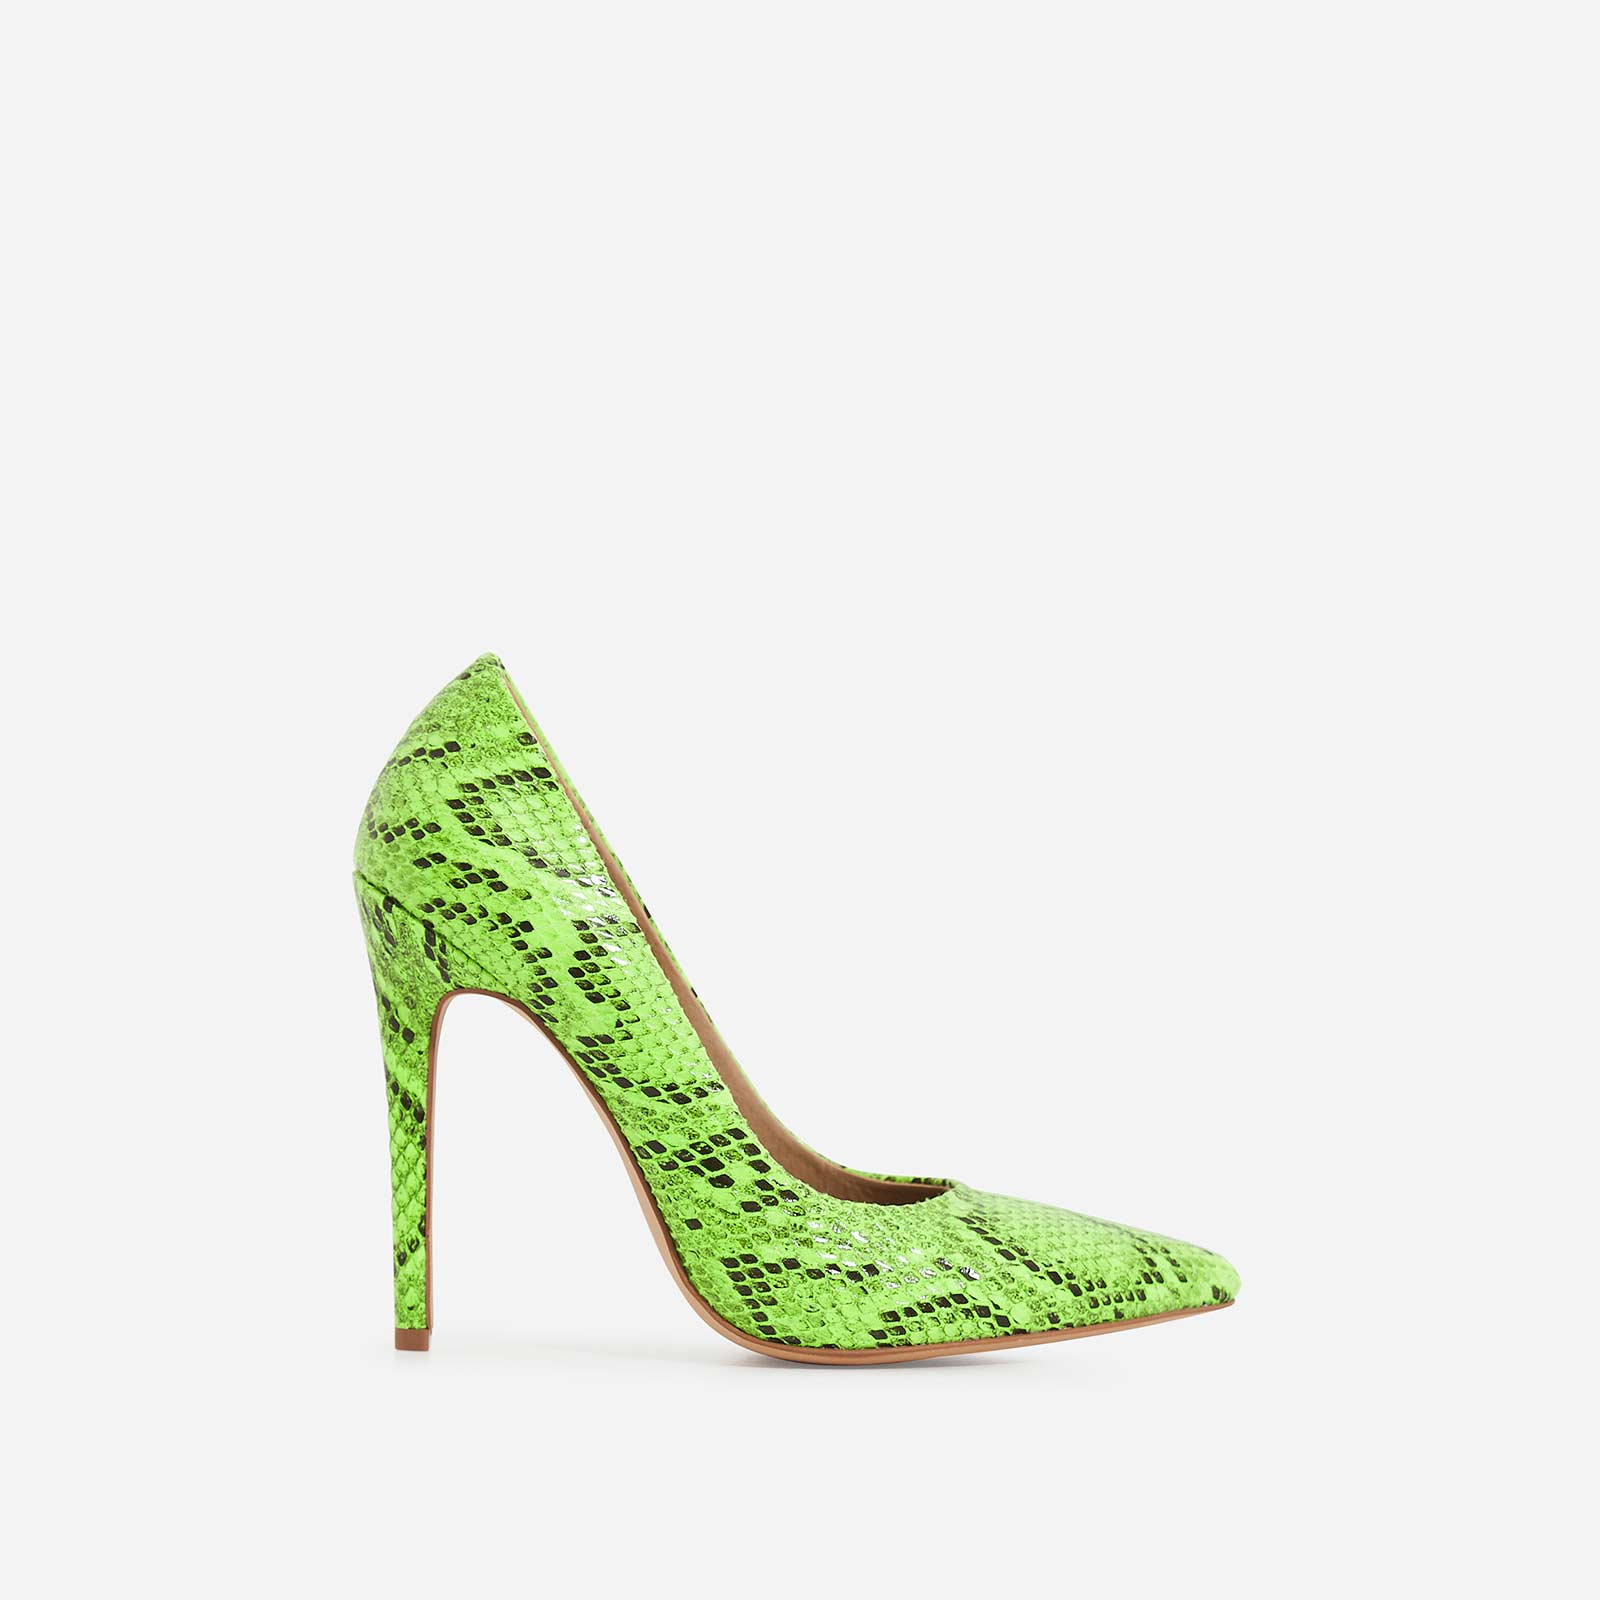 Bronte Court Heel In Neon Green Snake Print Faux Leather